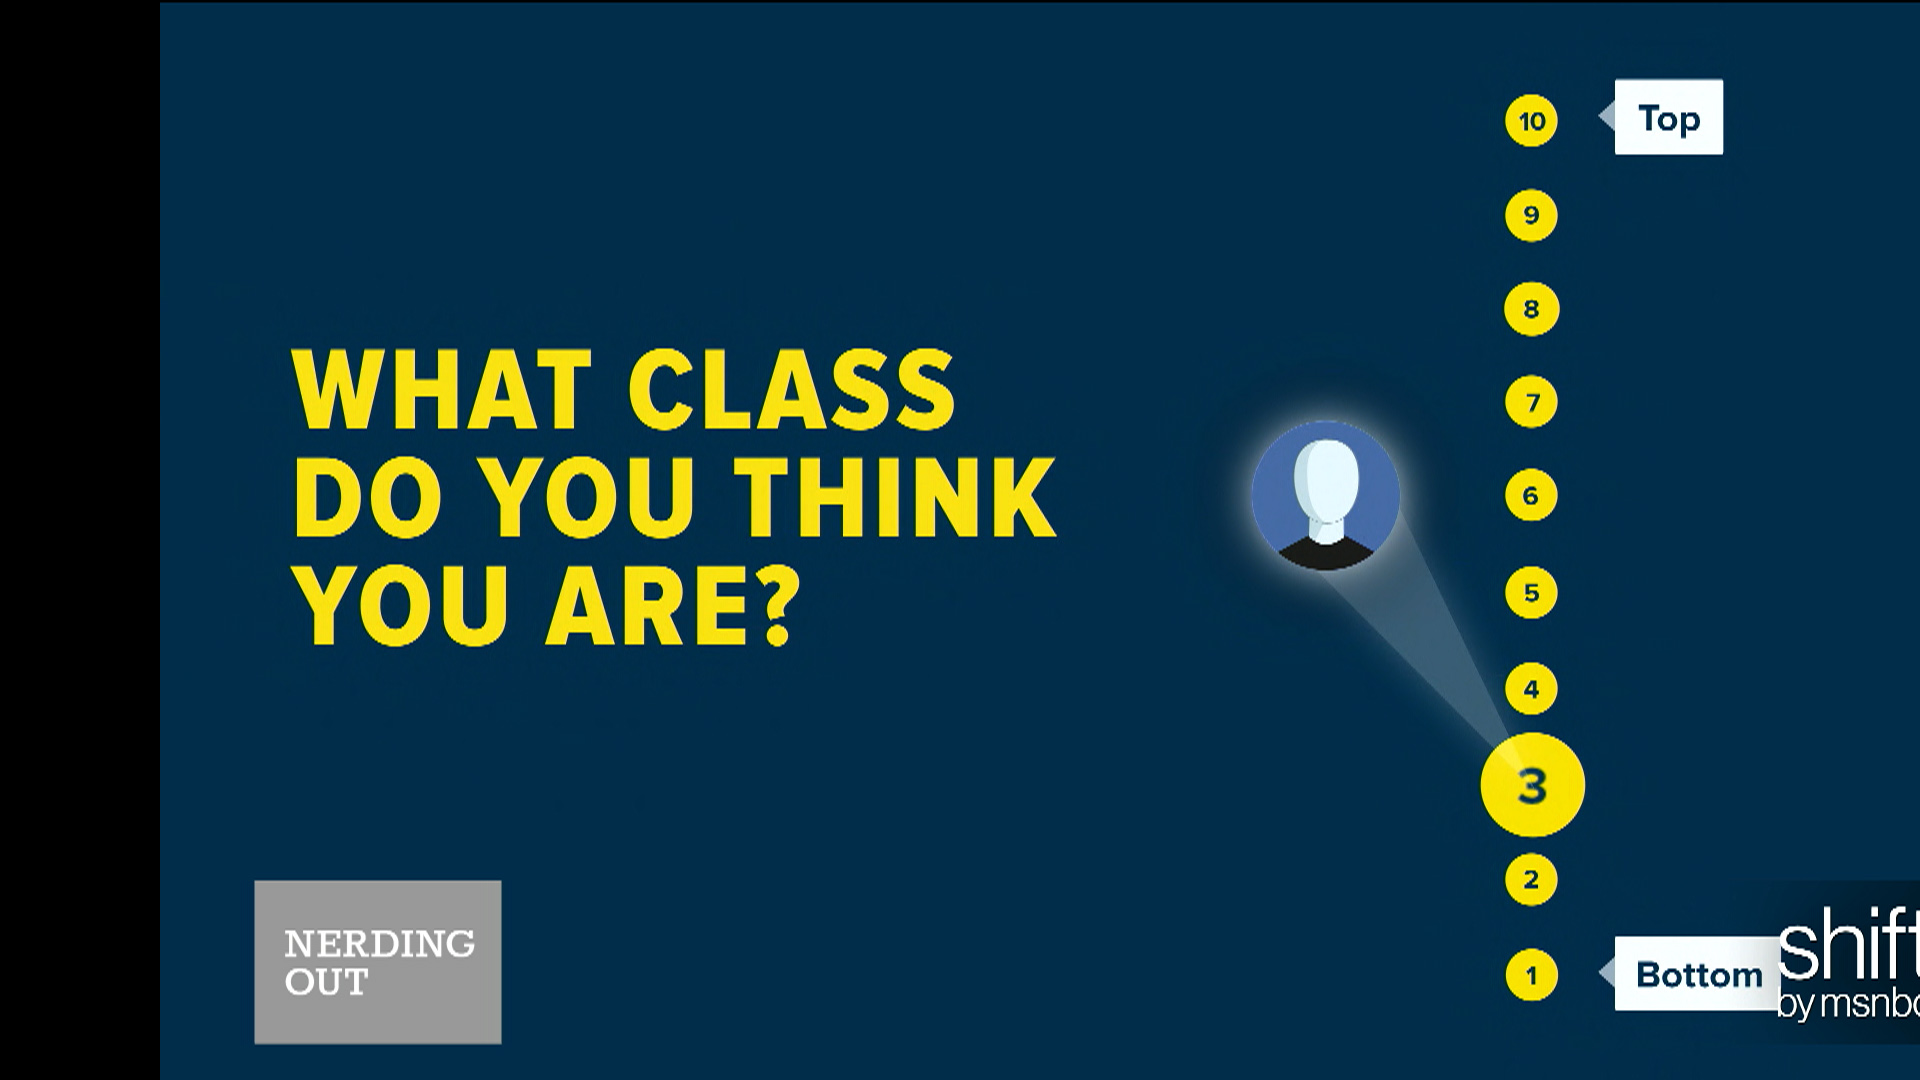 What class do you think you are?